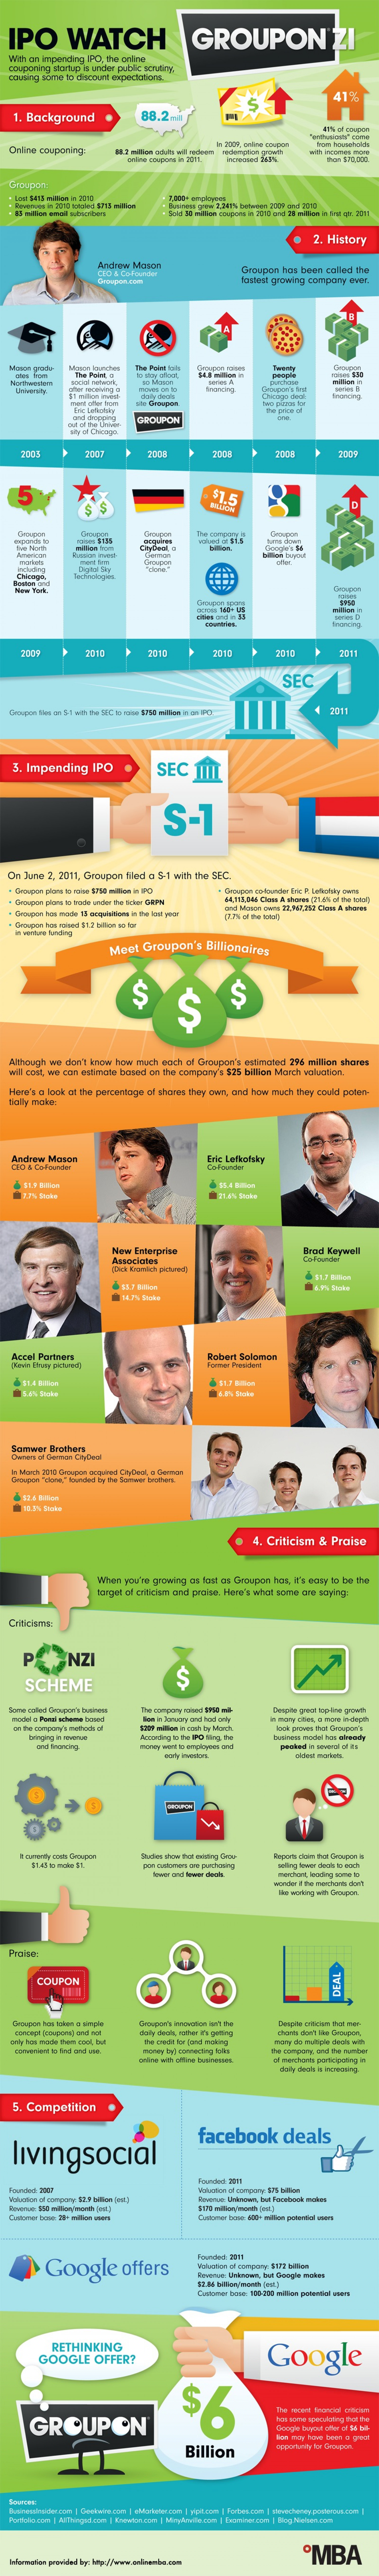 IPO Watch Groupon  Infographic